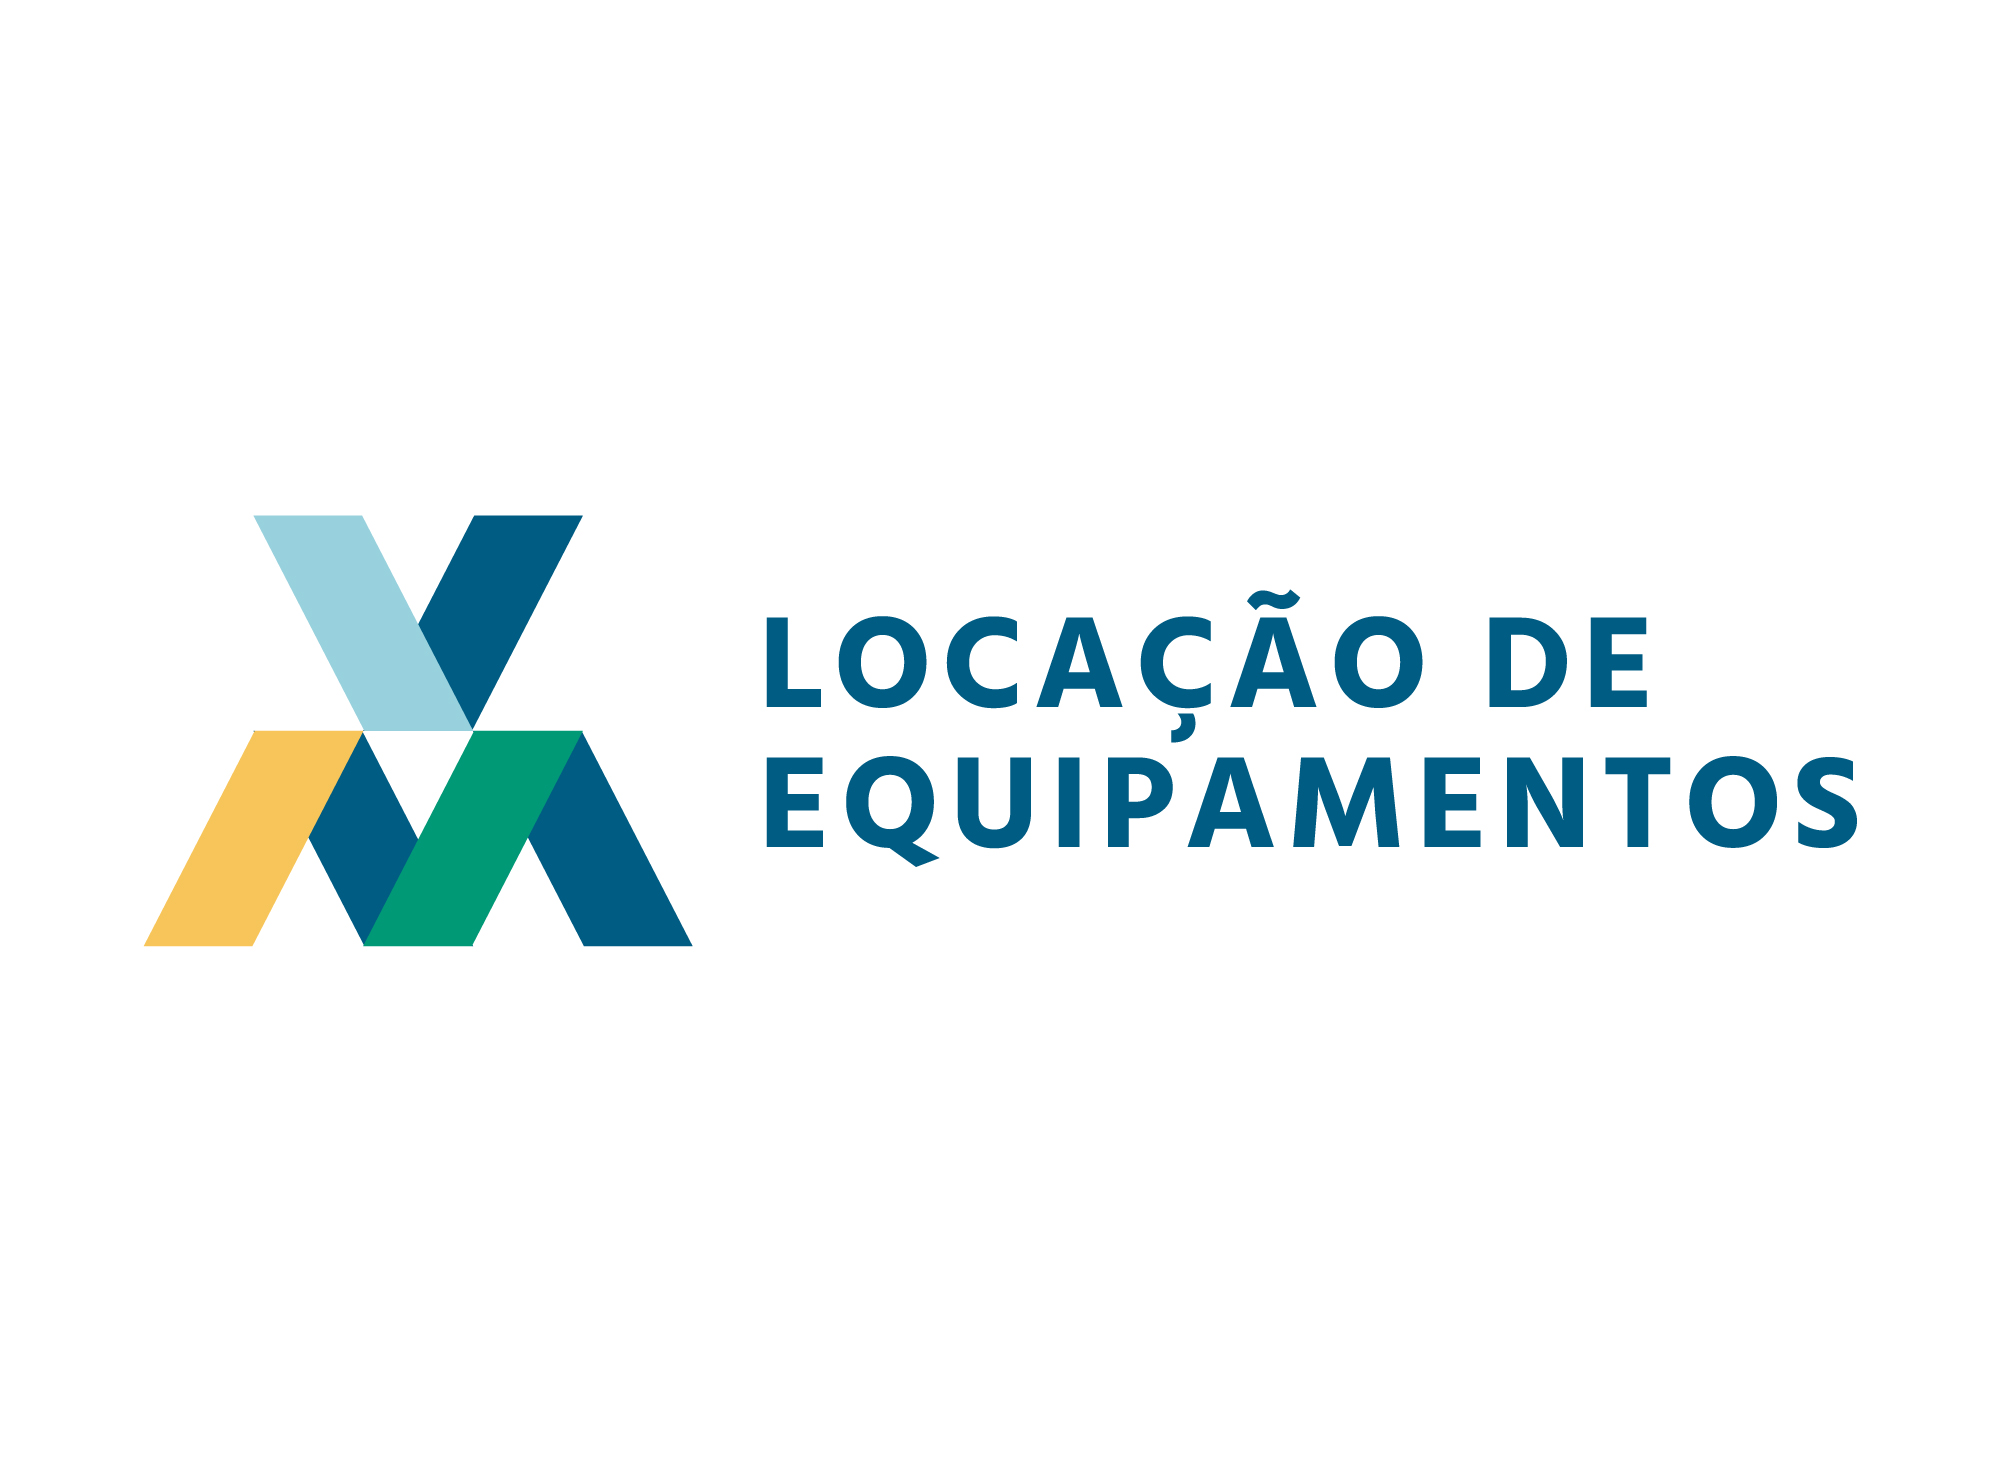 vm-locacoes-de-equipamentos-cliente-agencia-diretriz-digital-marketing-fortaleza